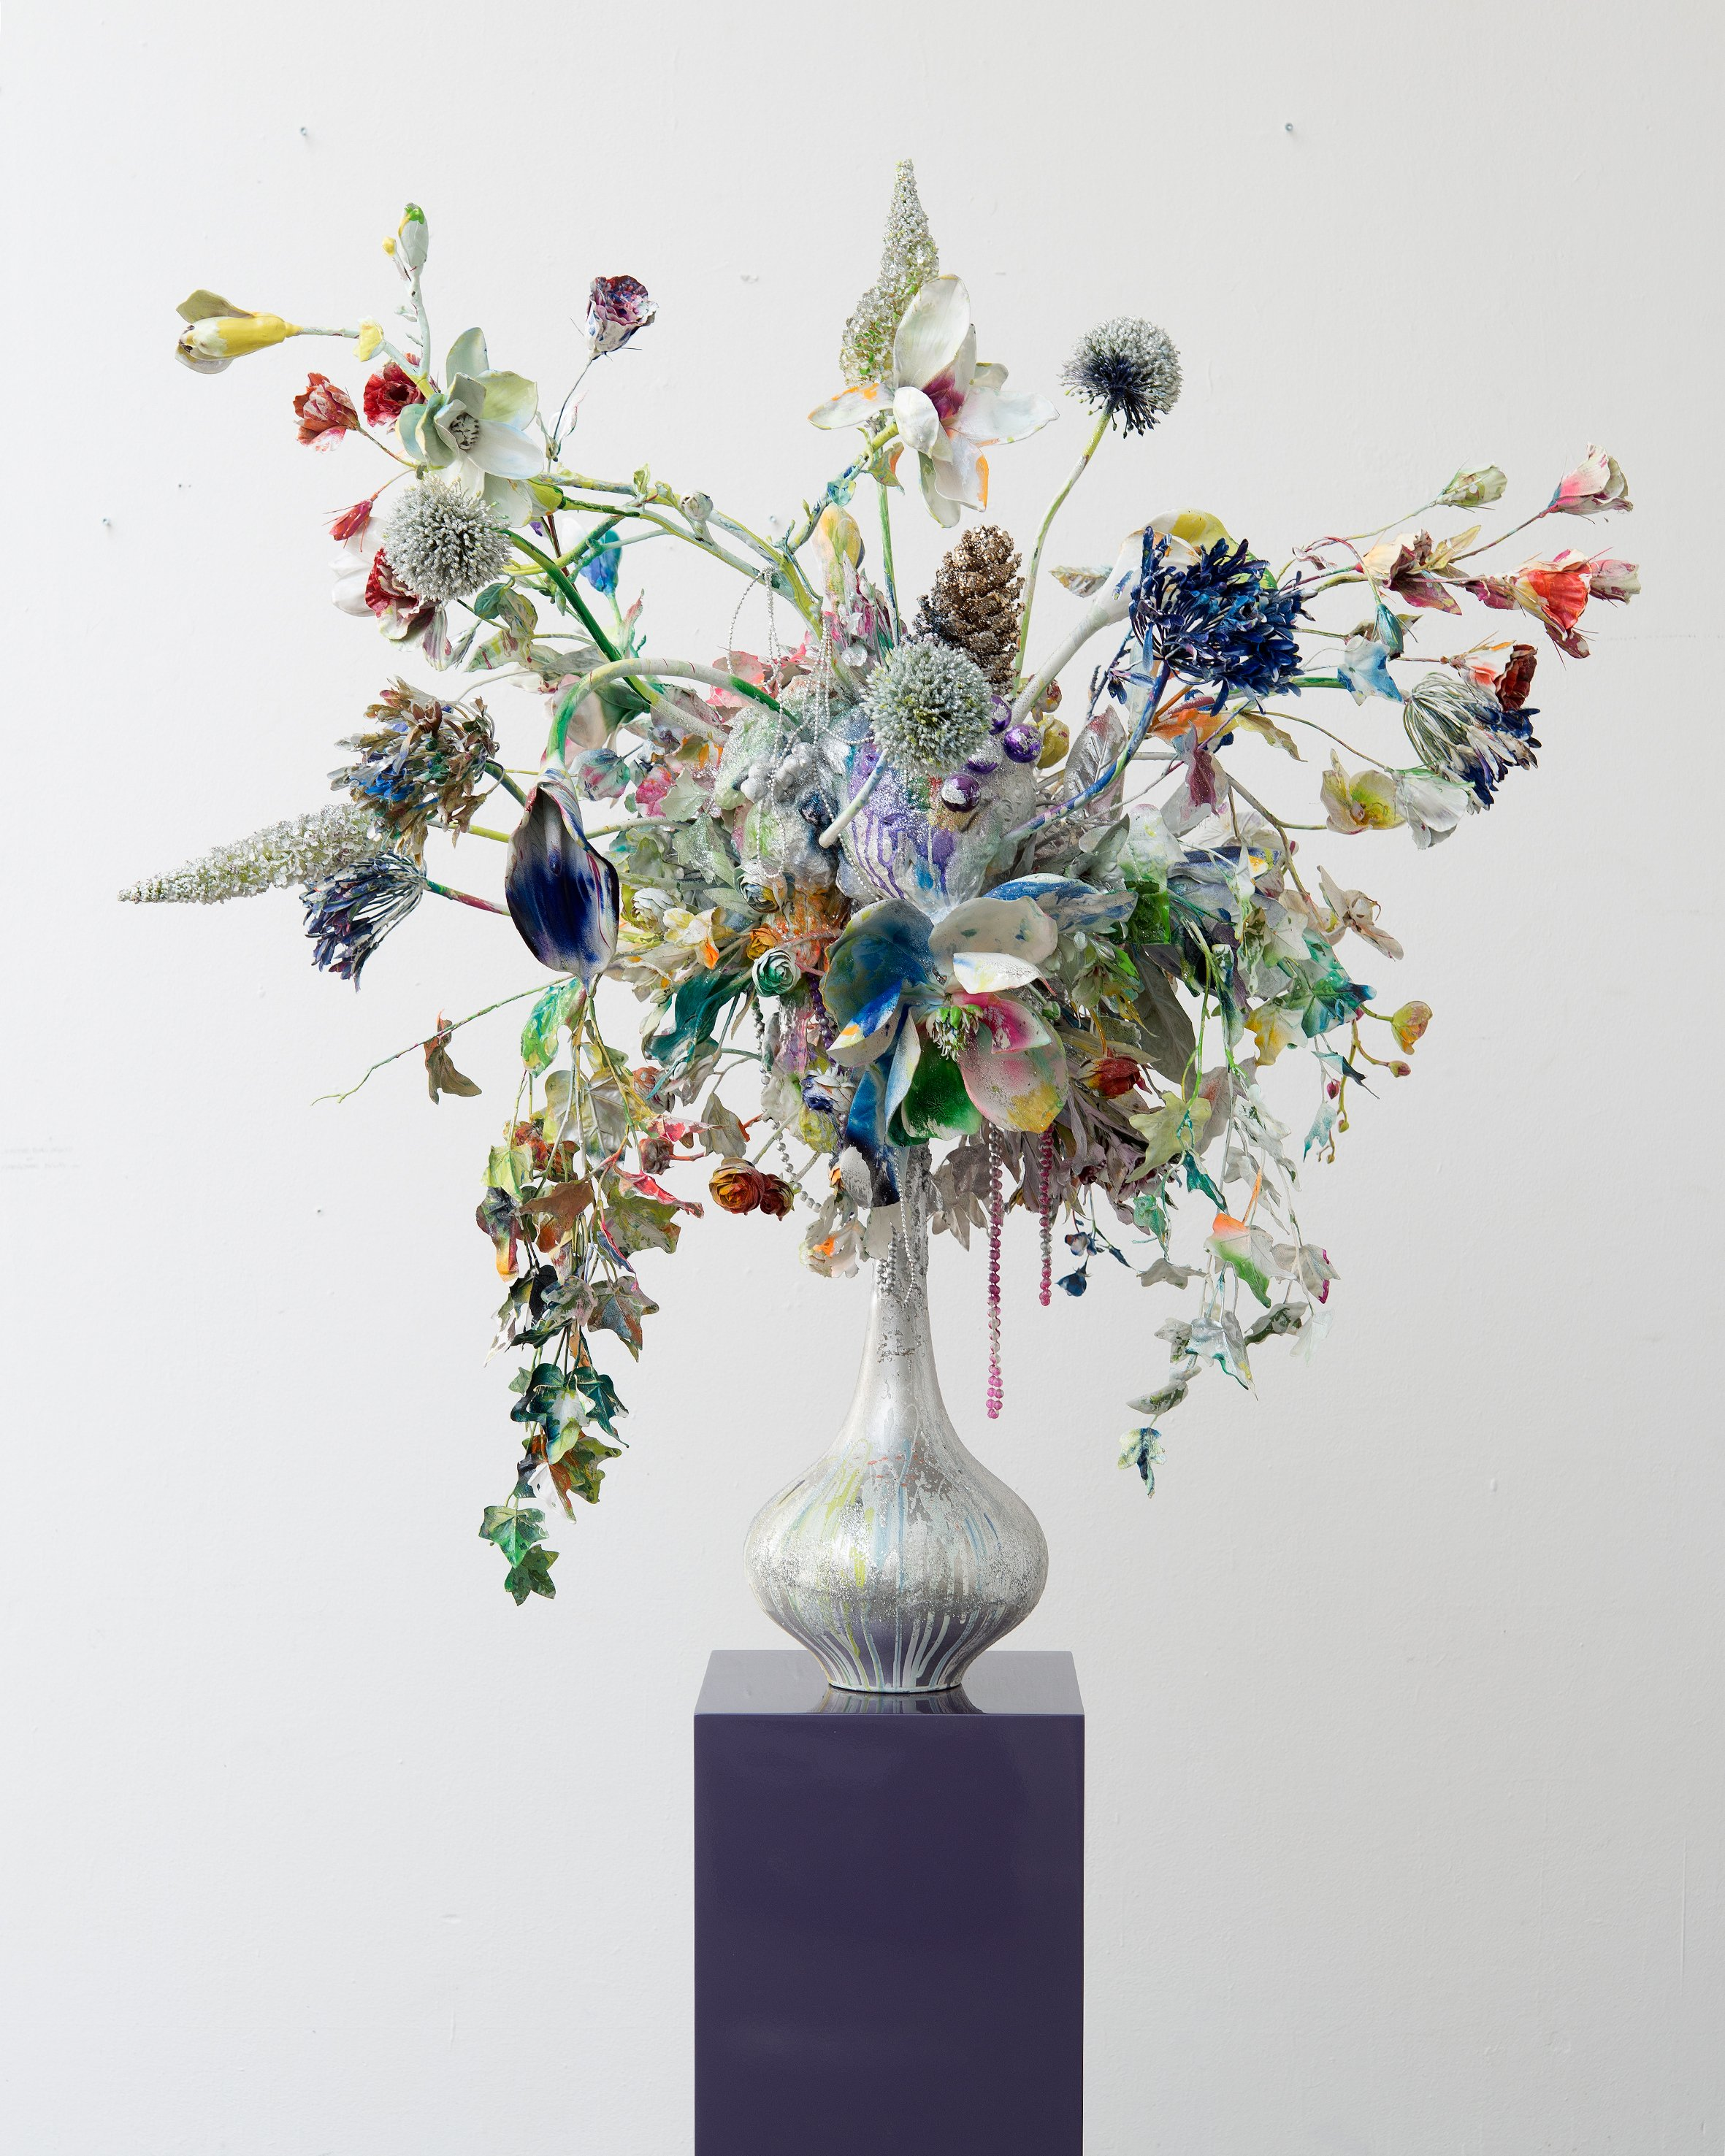 Substrat Mauritius, Ceramic, Glass, Mixed Media, Glitter, Zirkon, Lacquer, 110x100x100cm, 2013.jpg